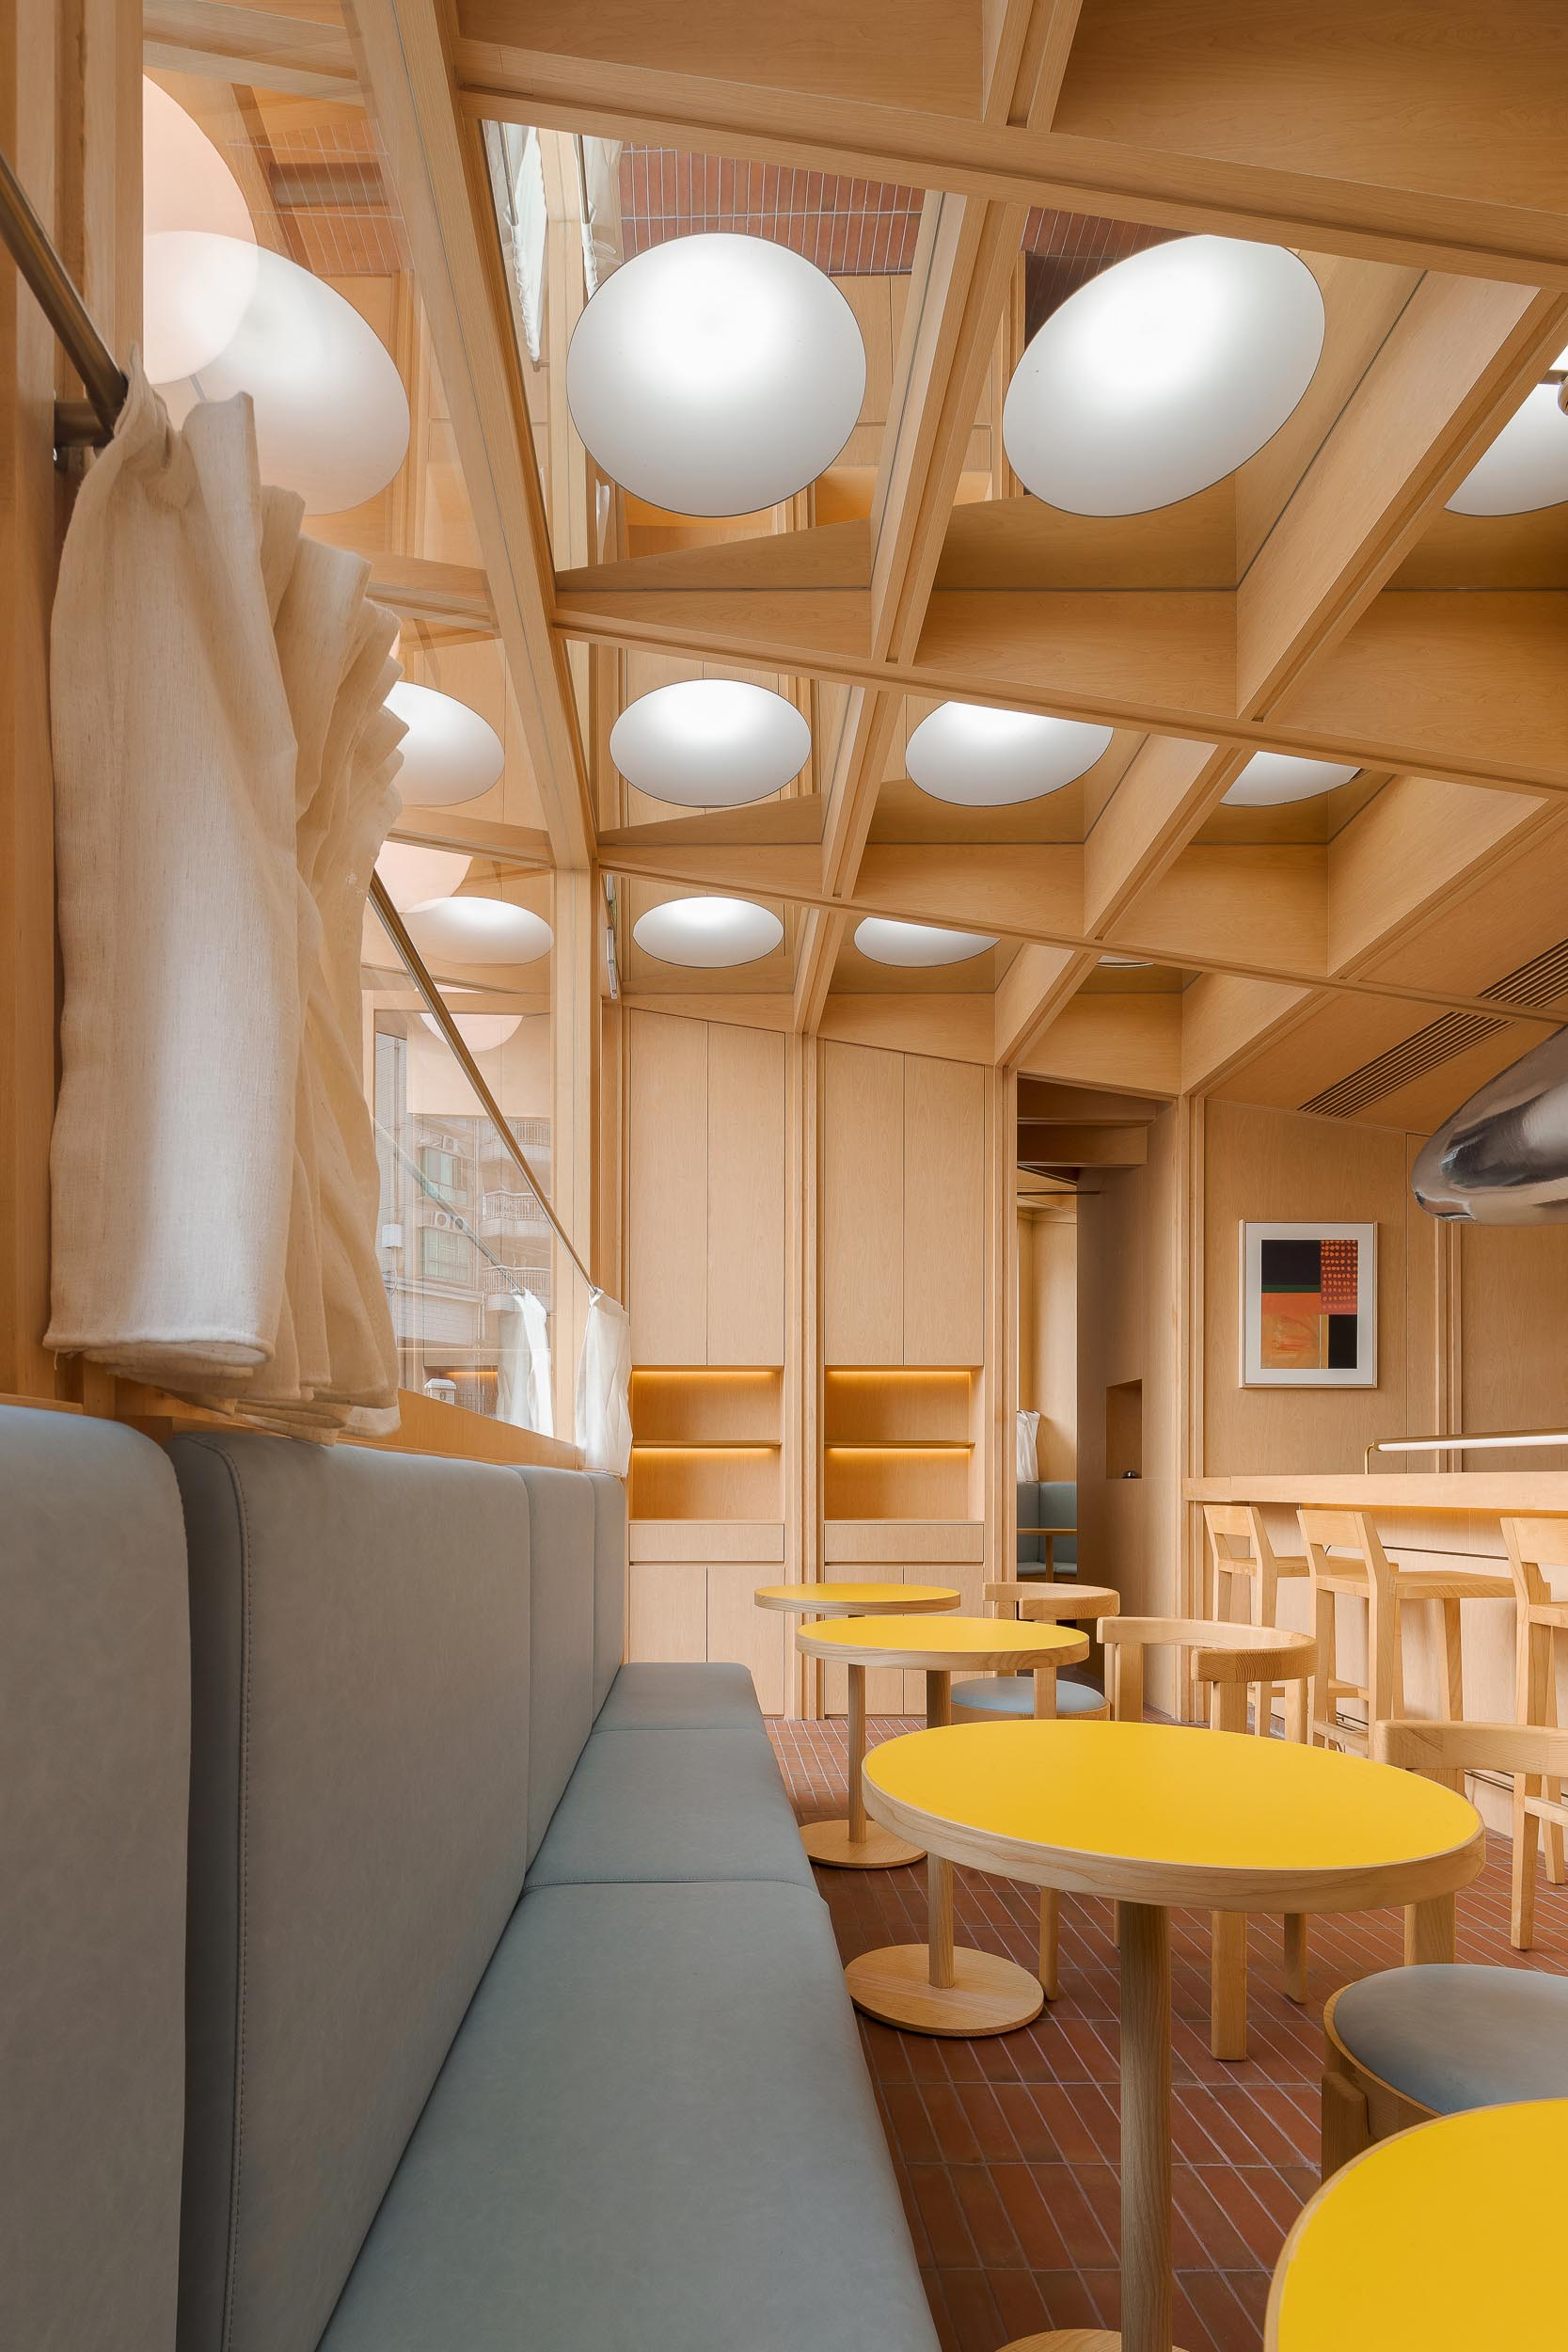 A modern cafe and bar with a wood interior, banquette seating, and bright yellow tables.